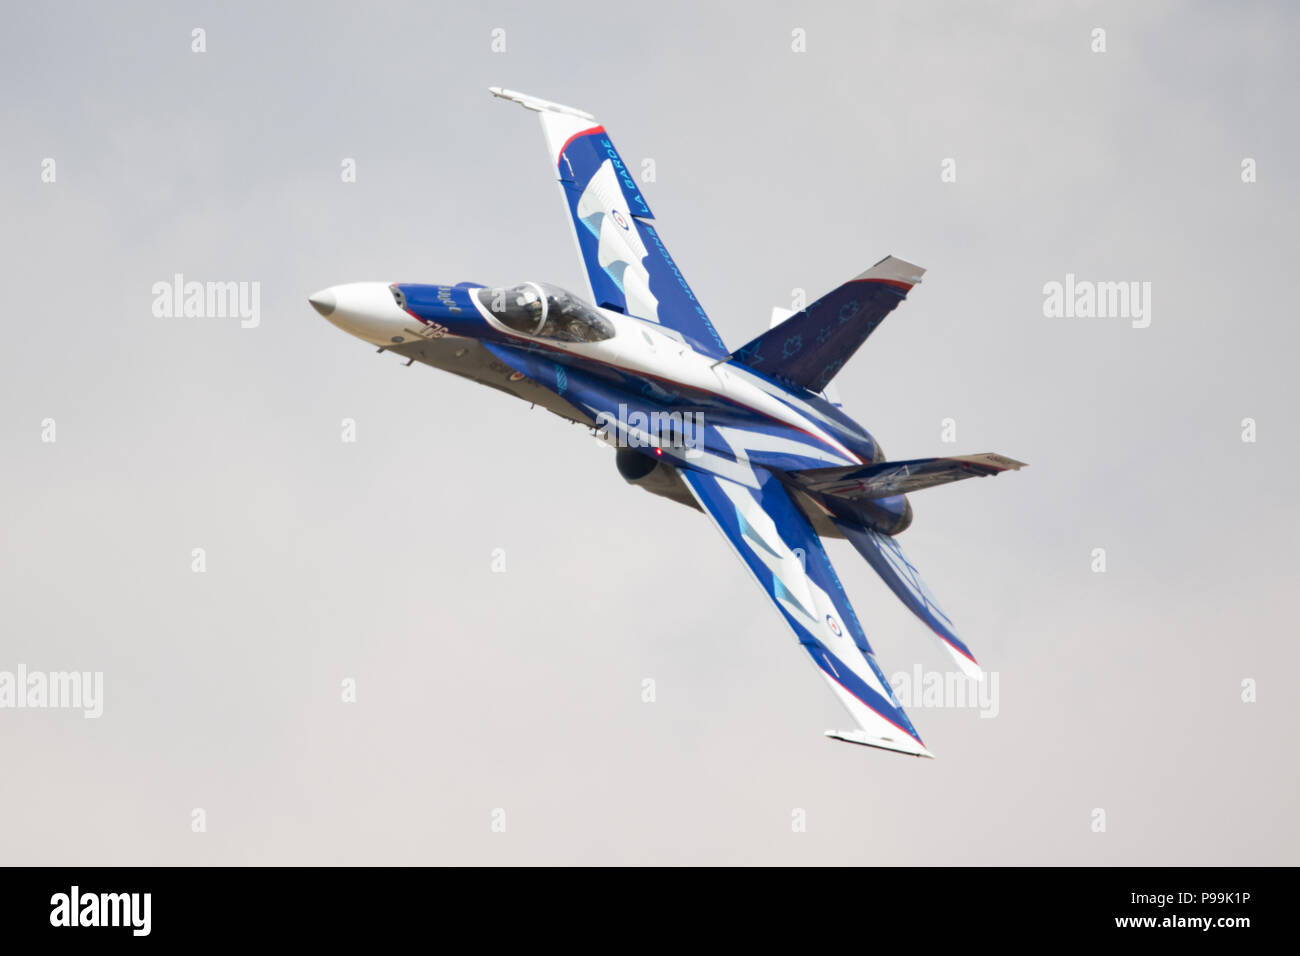 Boeing F/A 18C Hornet of the Swiss Air Force at The Royal International Air Tattoo at RAF Fairford, England. - Stock Image